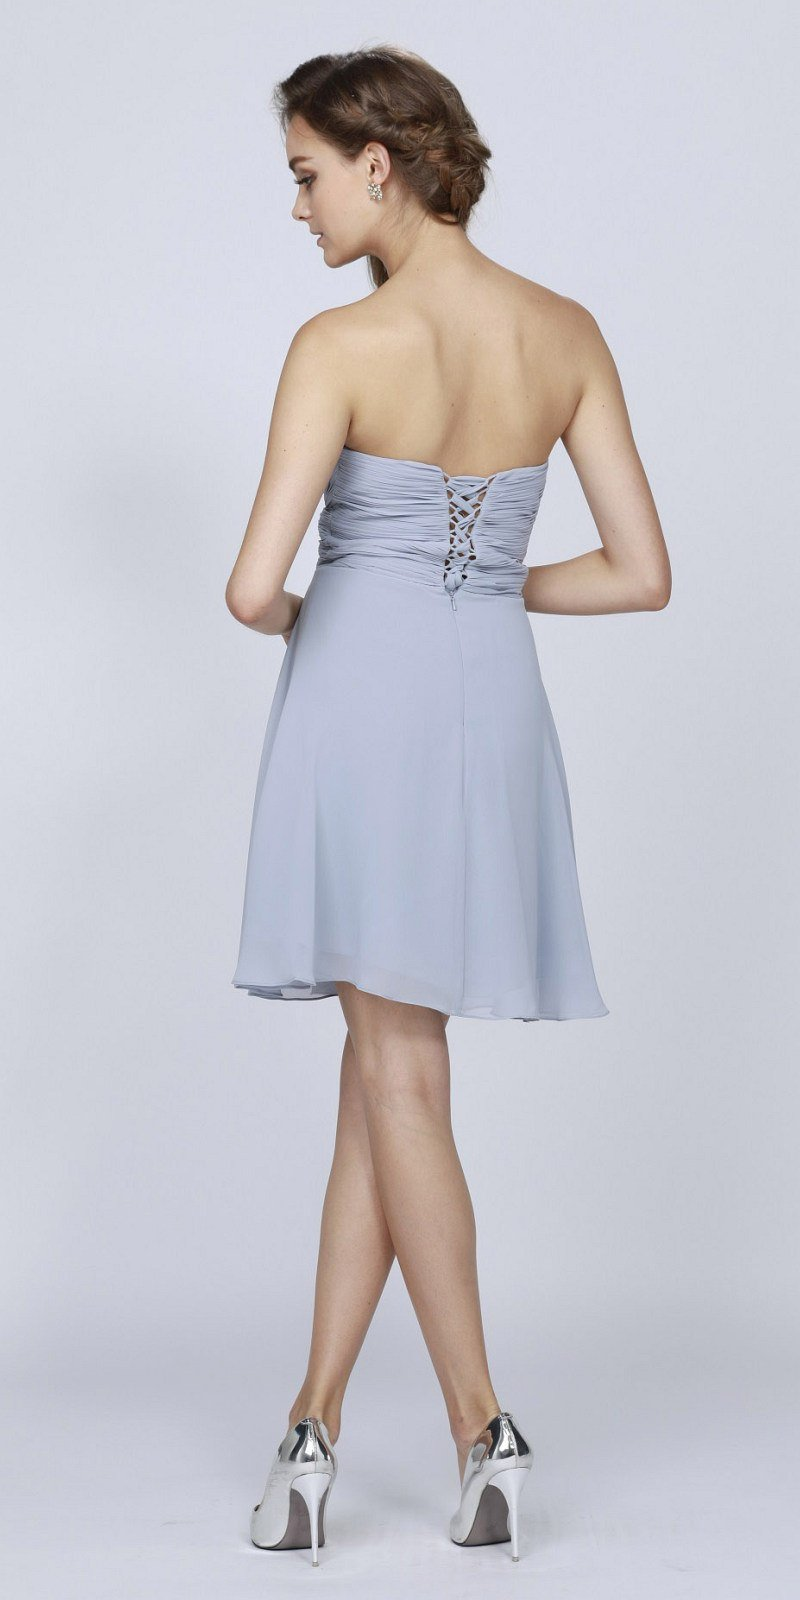 b668a6f3151 ... Short Chiffon Bridesmaid Silver Dress Sweetheart Neck Corset ...